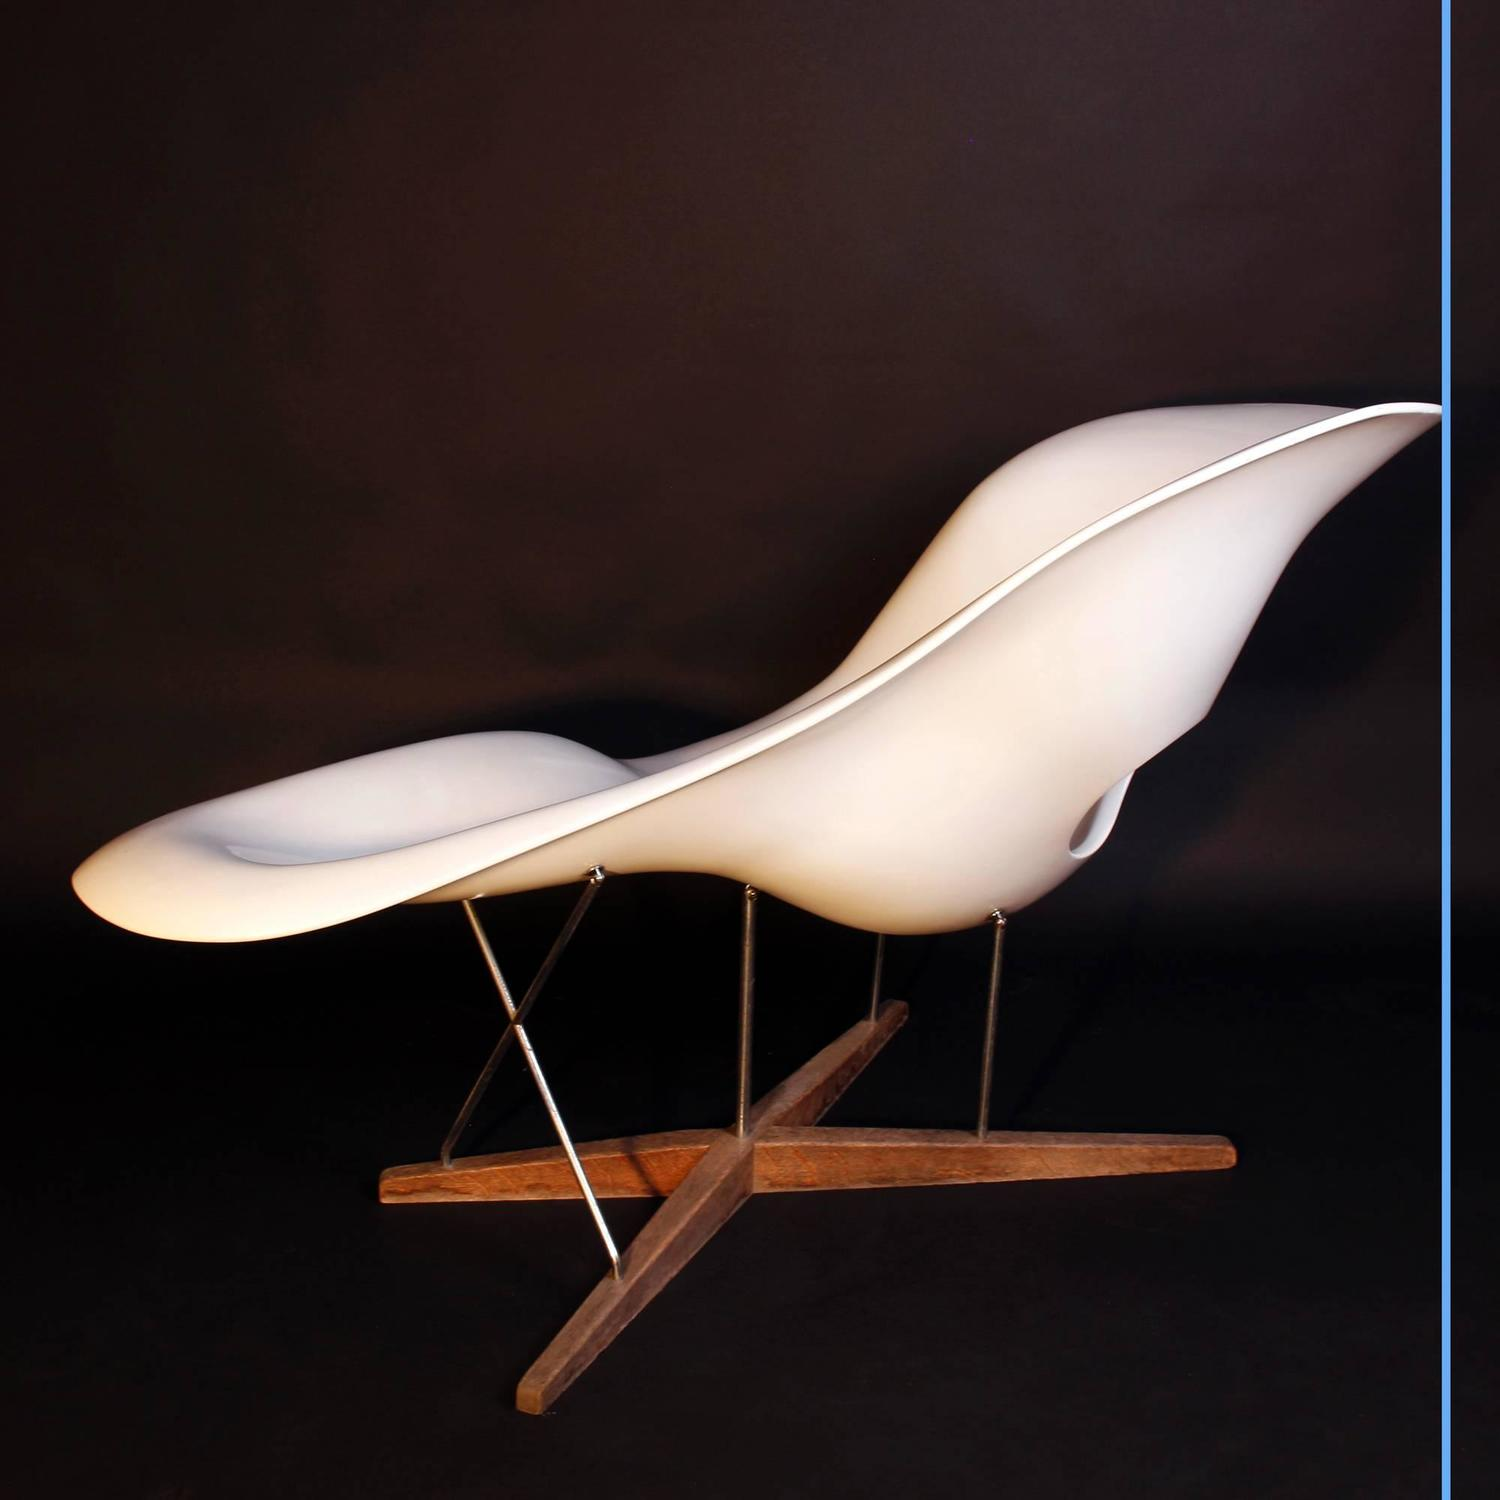 La chaise charles eames chaise longue for sale at 1stdibs - Charles eames chaise ...